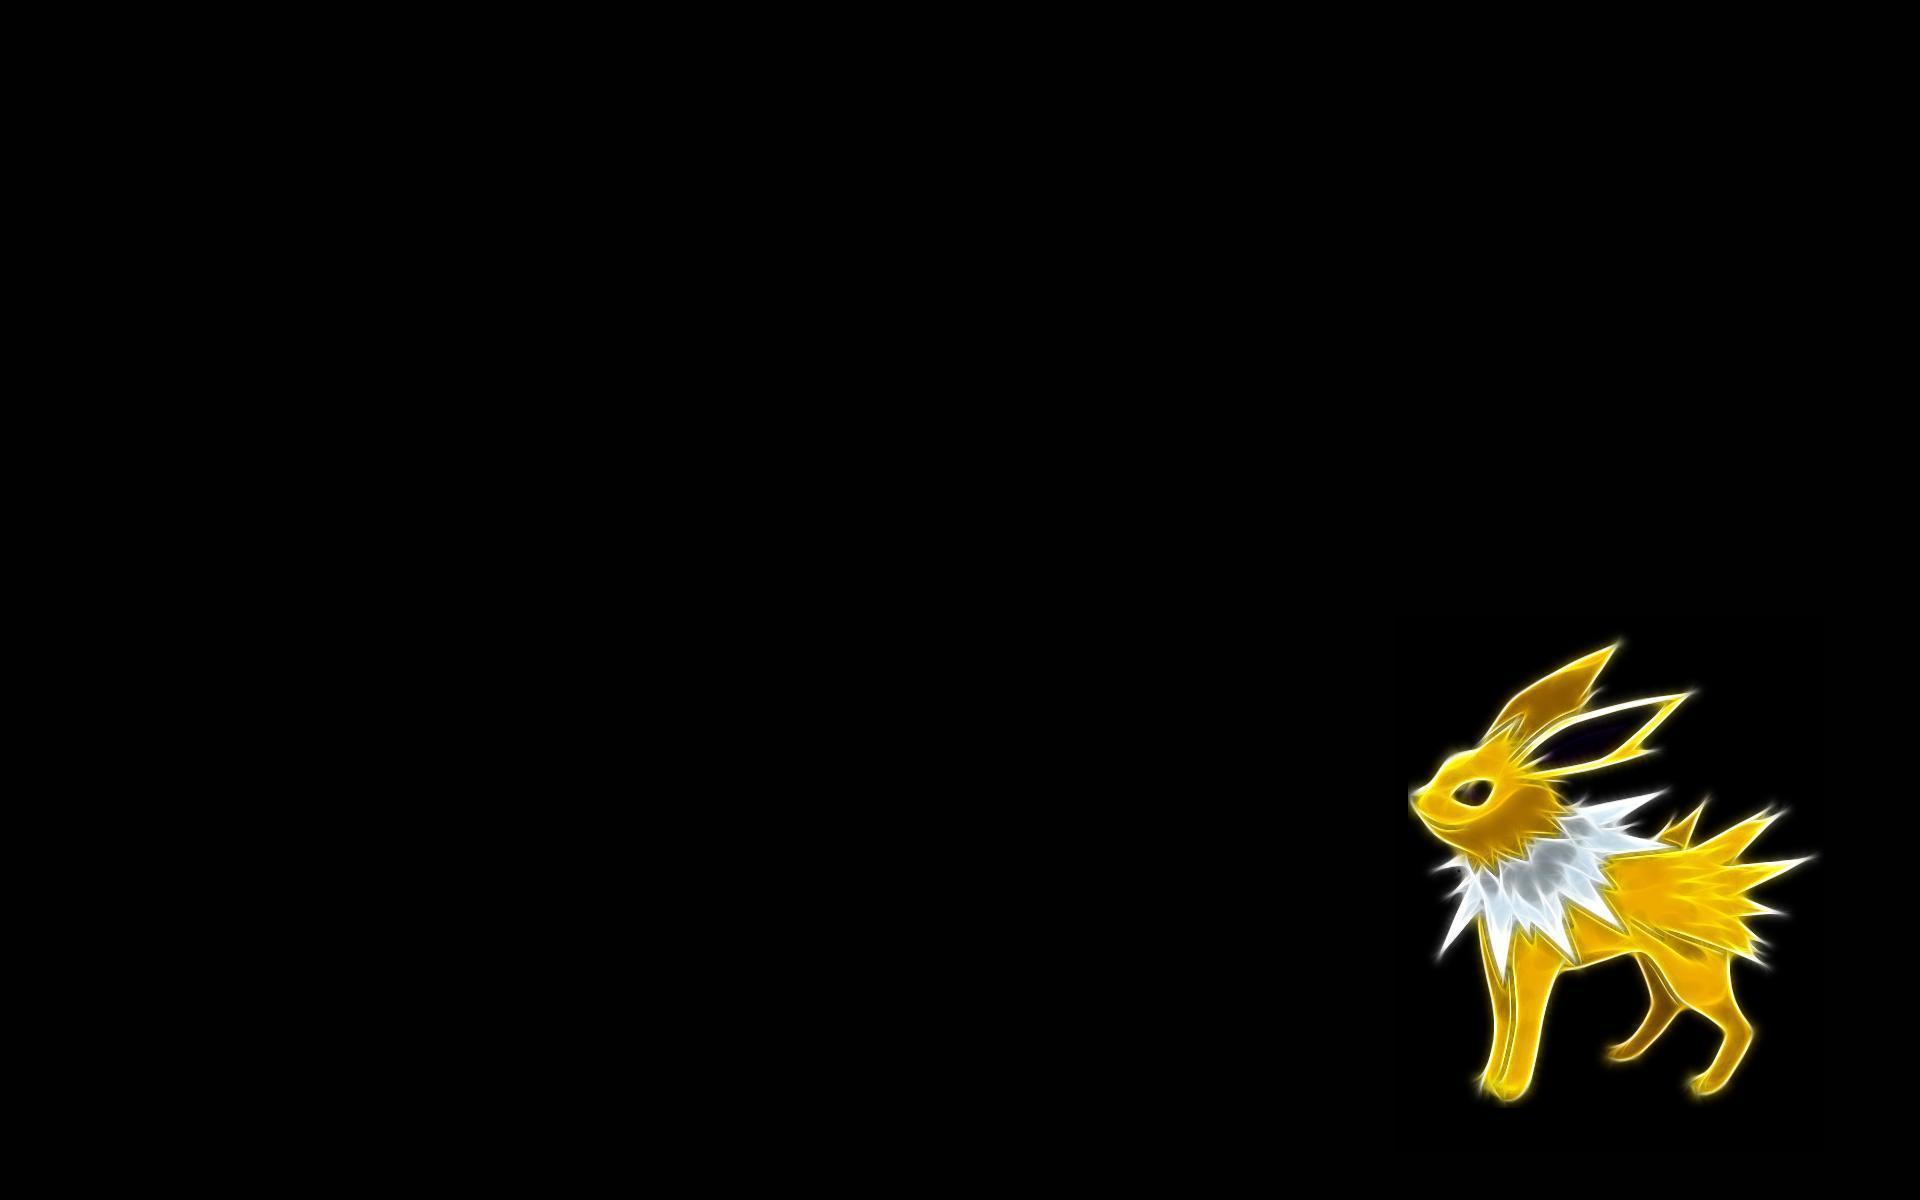 Pokemon Black Backgrounds - Wallpaper Cave